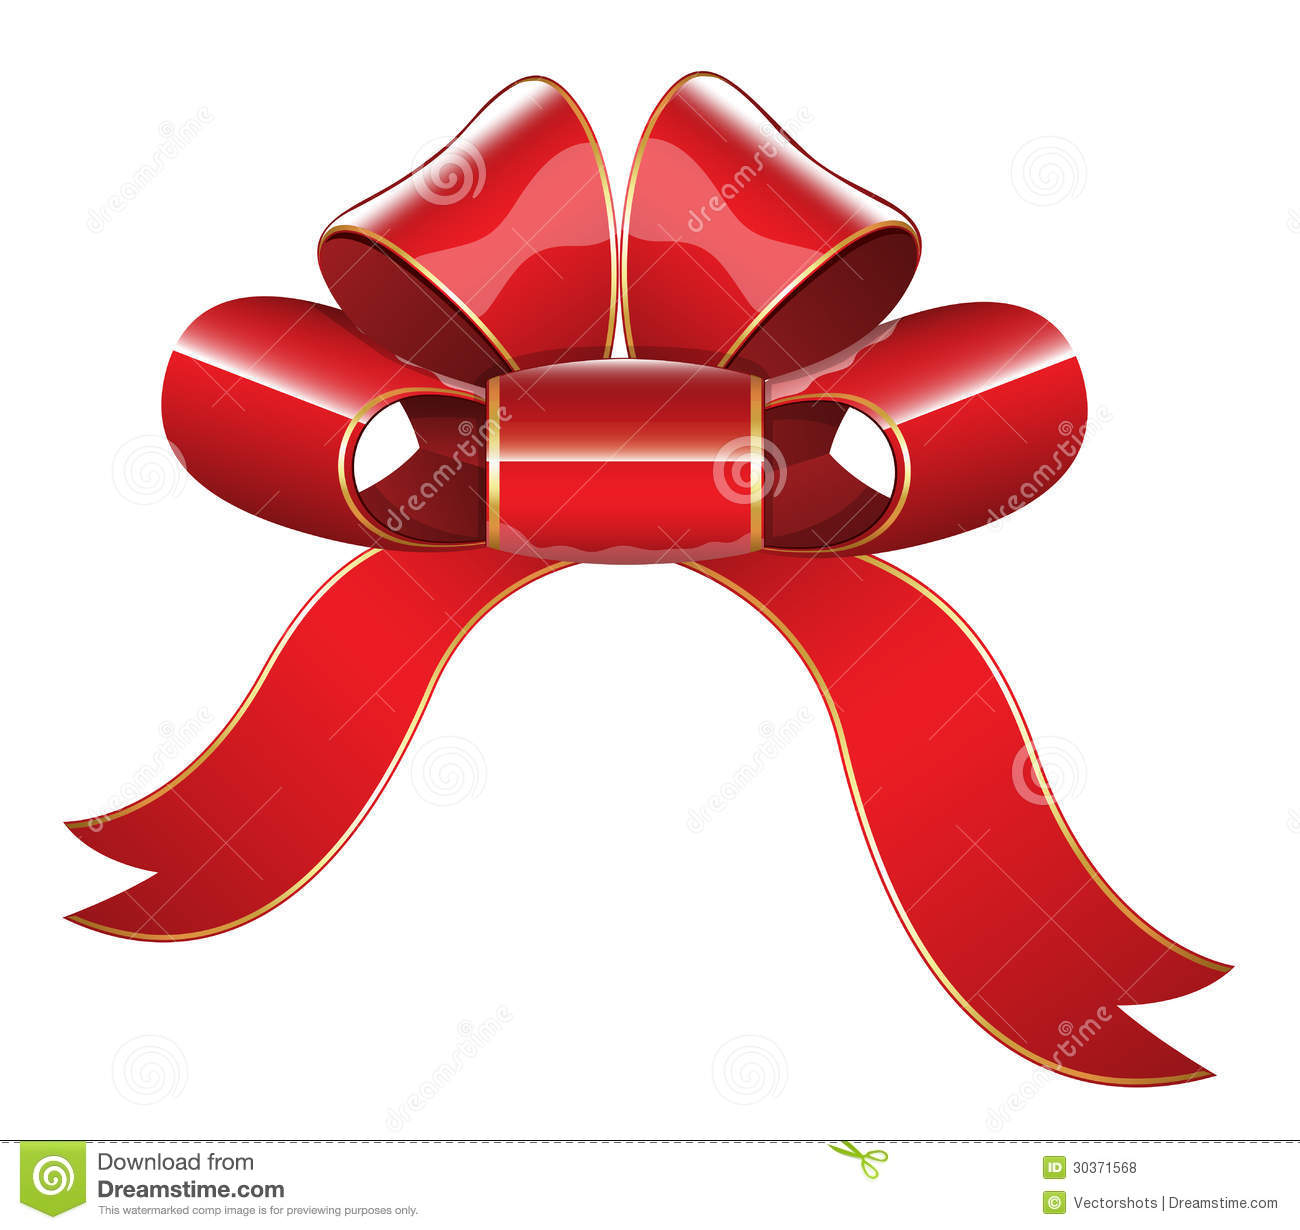 red glossy ribbon bow vector illustration - How To Make Christmas Bows Out Of Ribbon